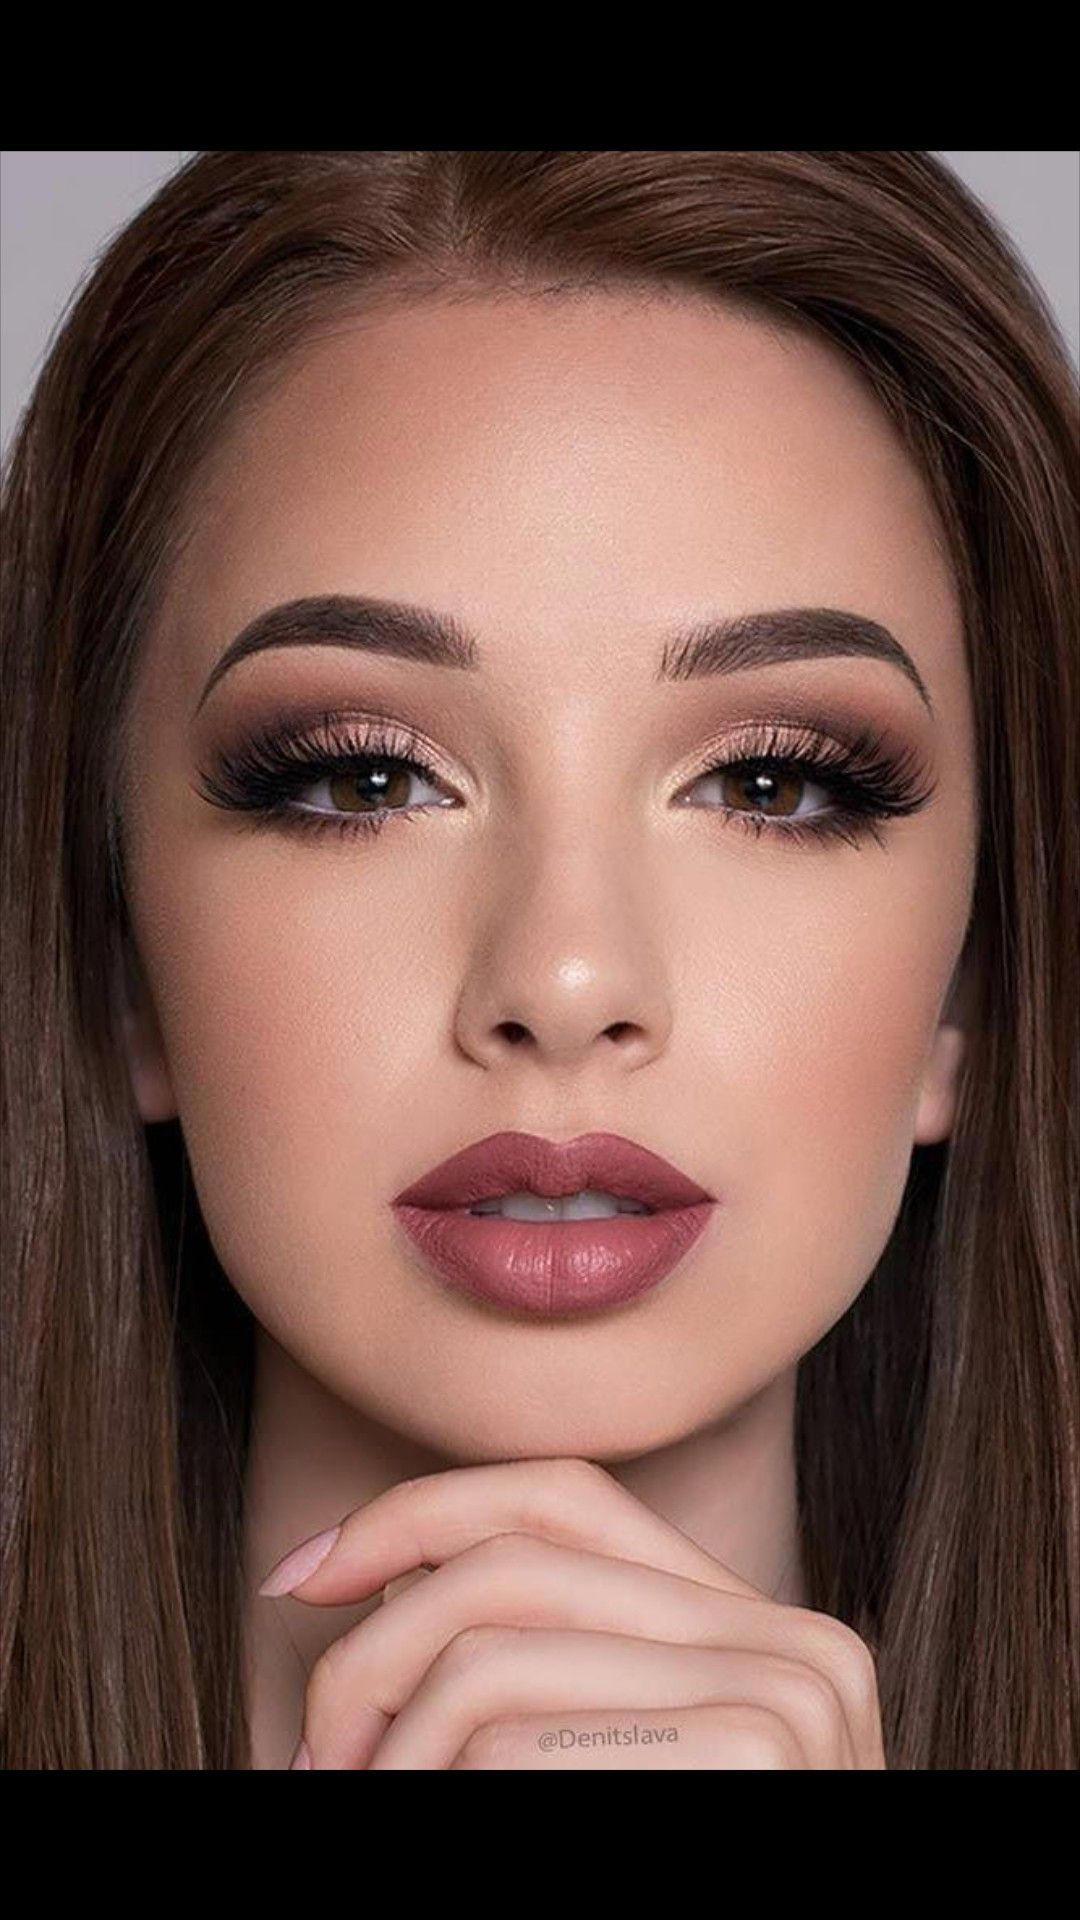 Eye Makeup For Brown Eyes: 10 Stunning Tutorials And 6 ... |Prom Makeup For Brown Eyes